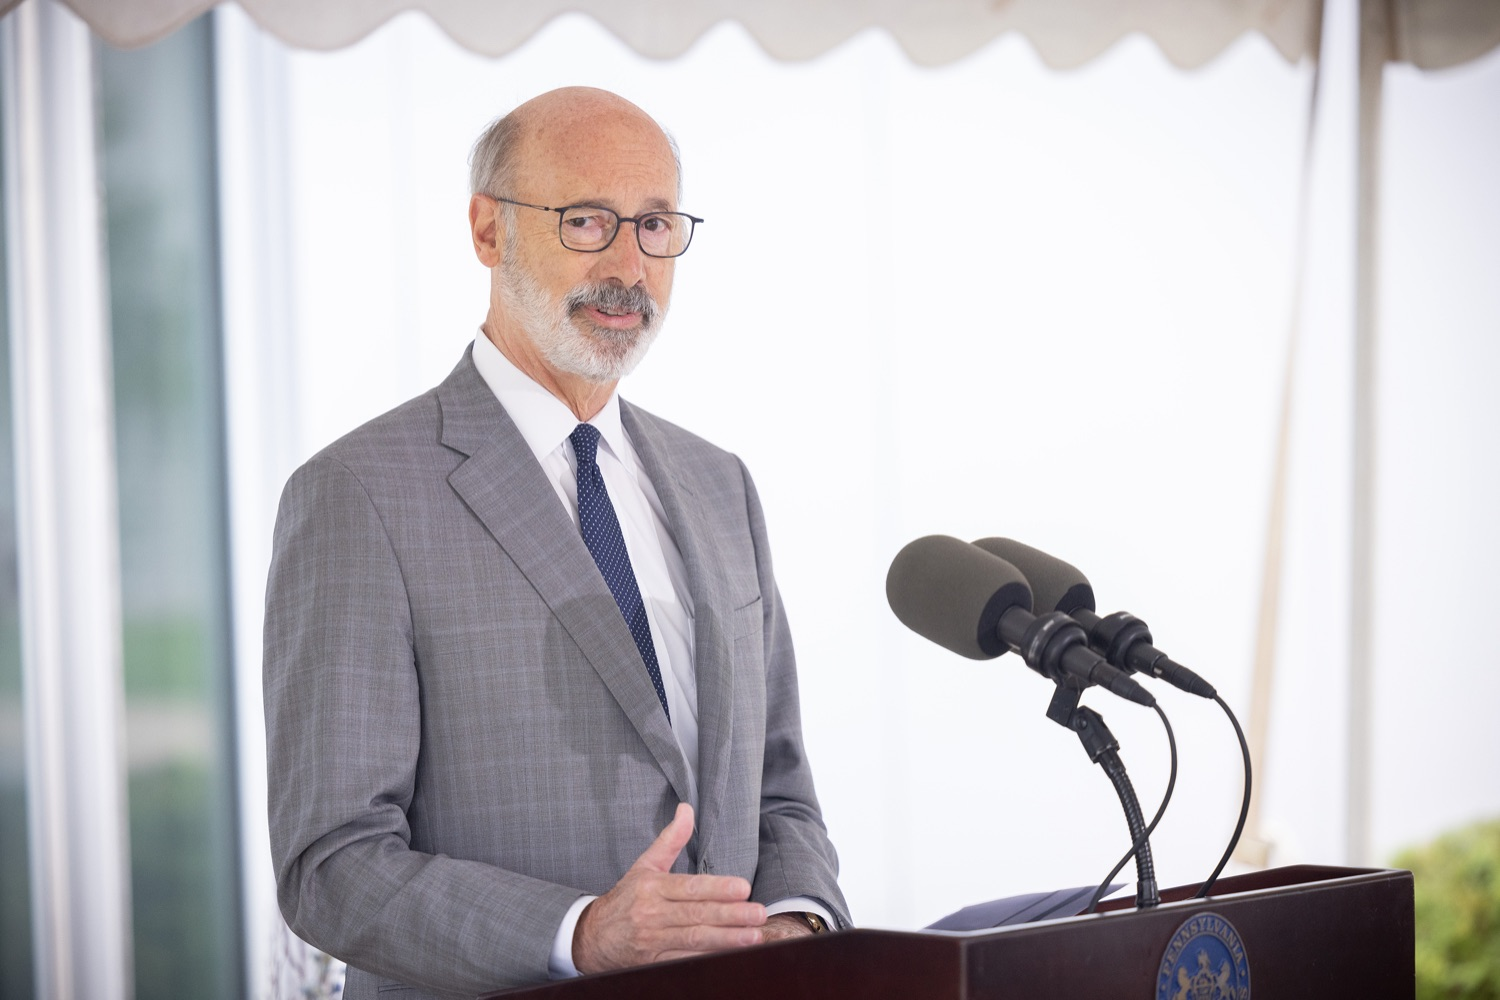 """<a href=""""https://filesource.wostreaming.net/commonwealthofpa/photo/20138_gov_BioTechniqueRibbon_dz_011.JPG"""" target=""""_blank"""">⇣Download Photo<br></a>Pennsylvania Governor Tom Wolf speaking with the press.  Governor Tom Wolf today joined BioTechnique CEO John Clapham, the Department of Community and Economic Developments (DCED) Governors Action Team (GAT), York County Economic Alliance CEO Kevin Schreiber, and local officials at the ribbon cutting ceremony for BioTechniques new pharmaceutical manufacturing facility in York County.   OCTOBER 12, 2021 - YORK, PA"""